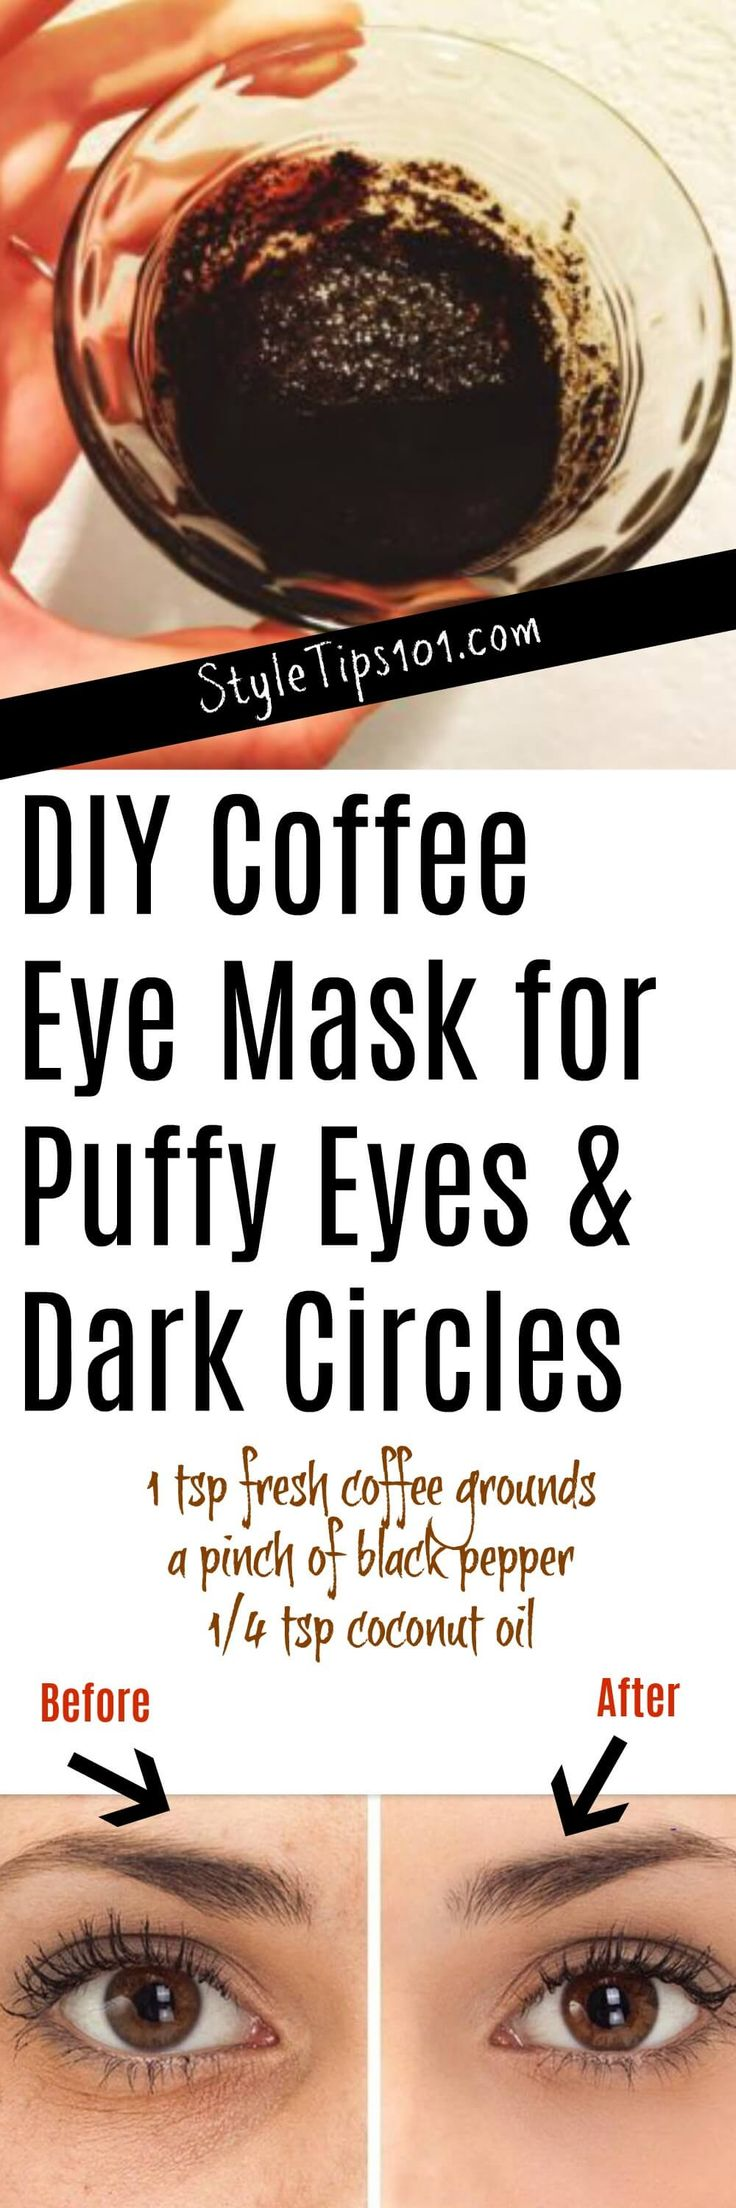 Homemade Coffee Eye Mask